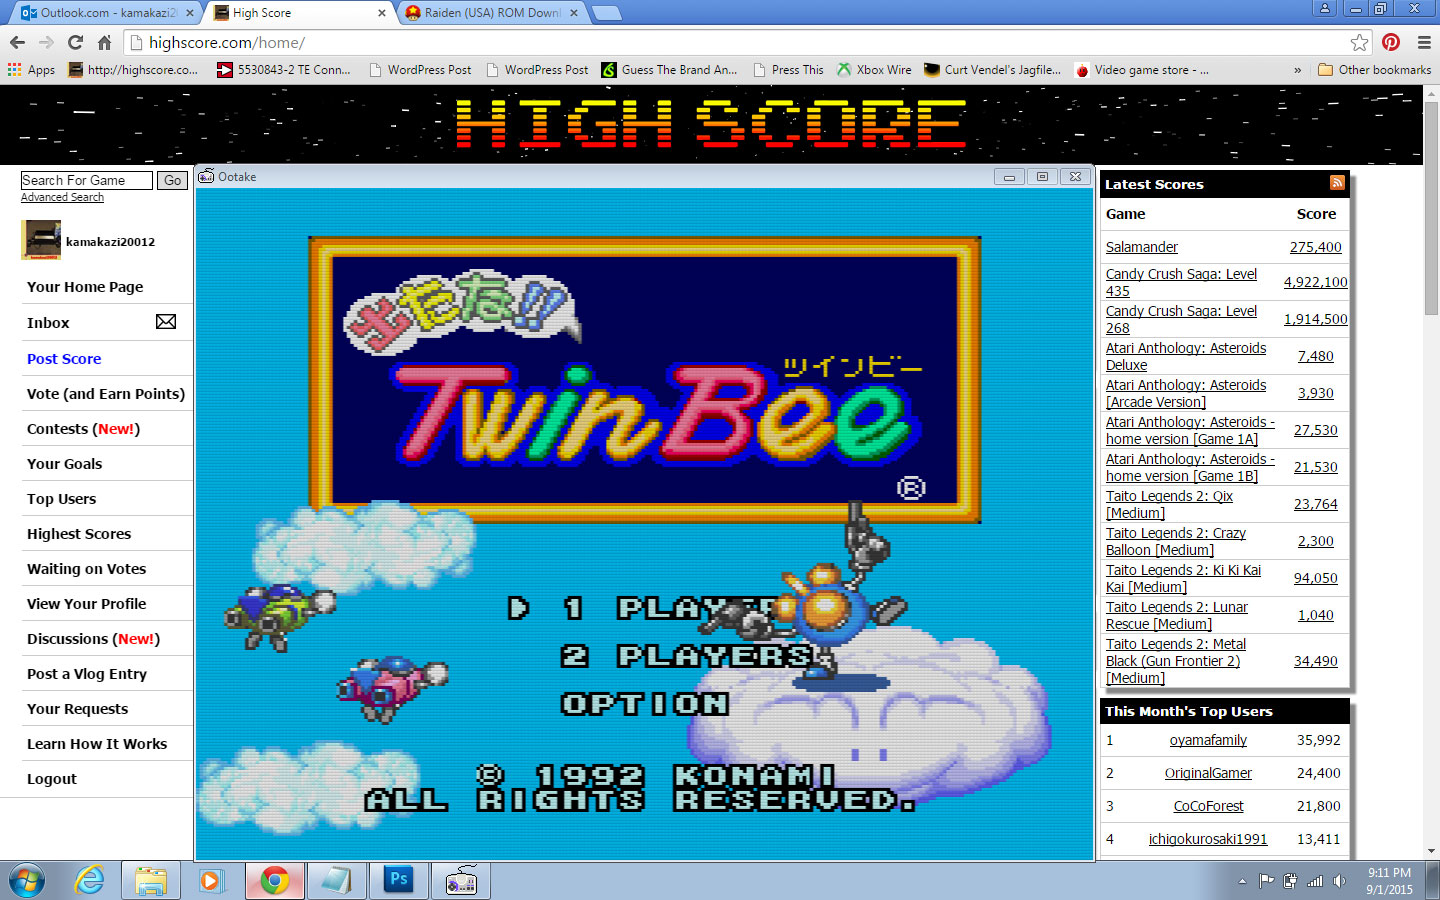 Detana!! TwinBee [Rank Normal] 165,650 points